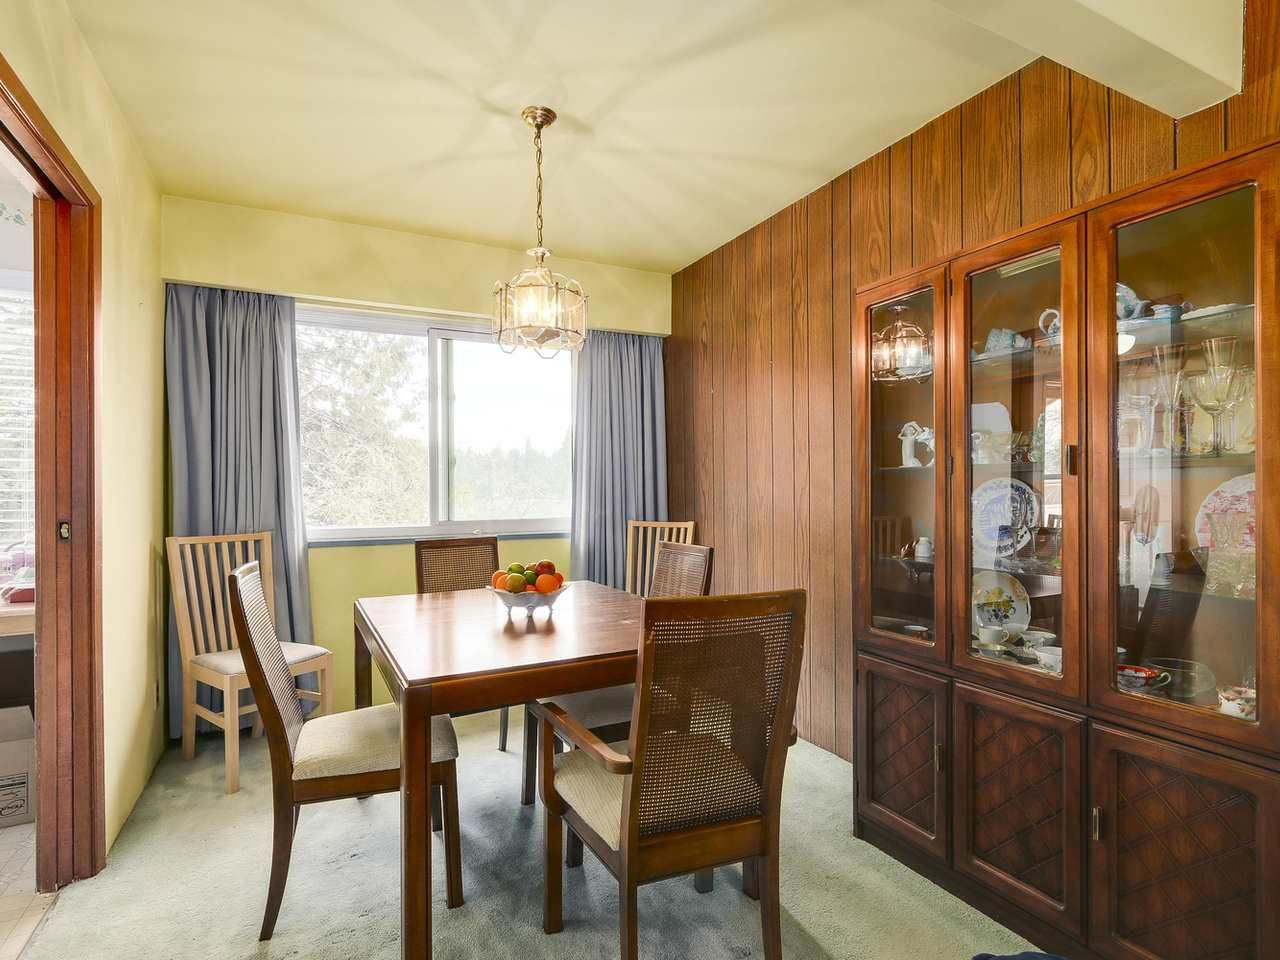 Photo 6: Photos: 731 LINTON Street in Coquitlam: Central Coquitlam House for sale : MLS®# R2157896